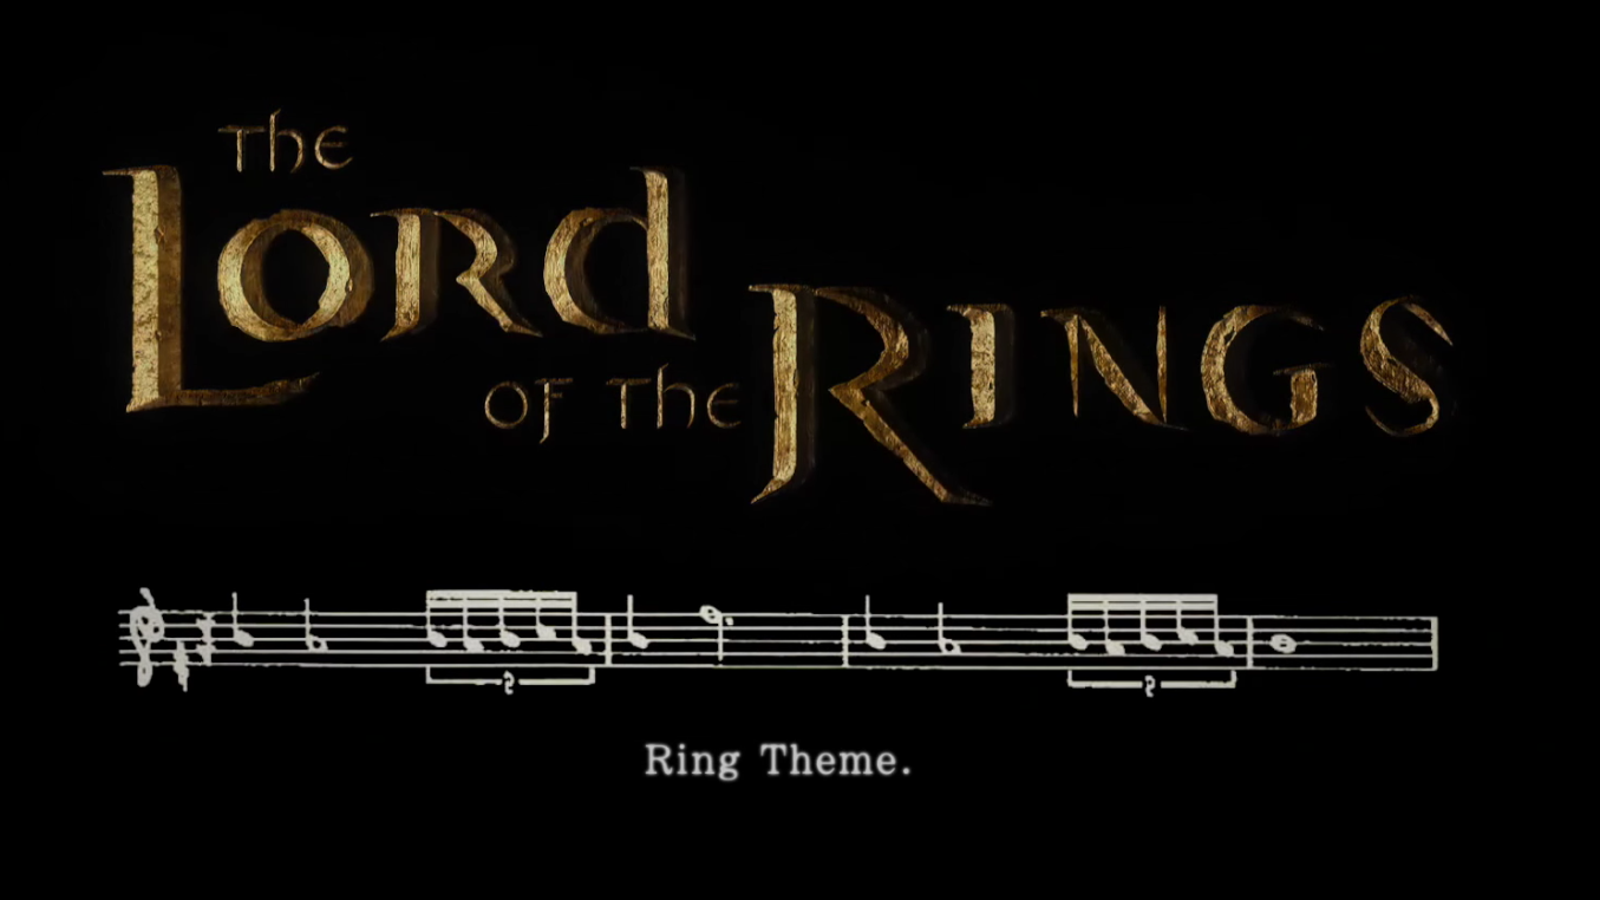 This Video Breaks Down The Fellowship of the Ring's Score, Reminds Us The Film Is Genius